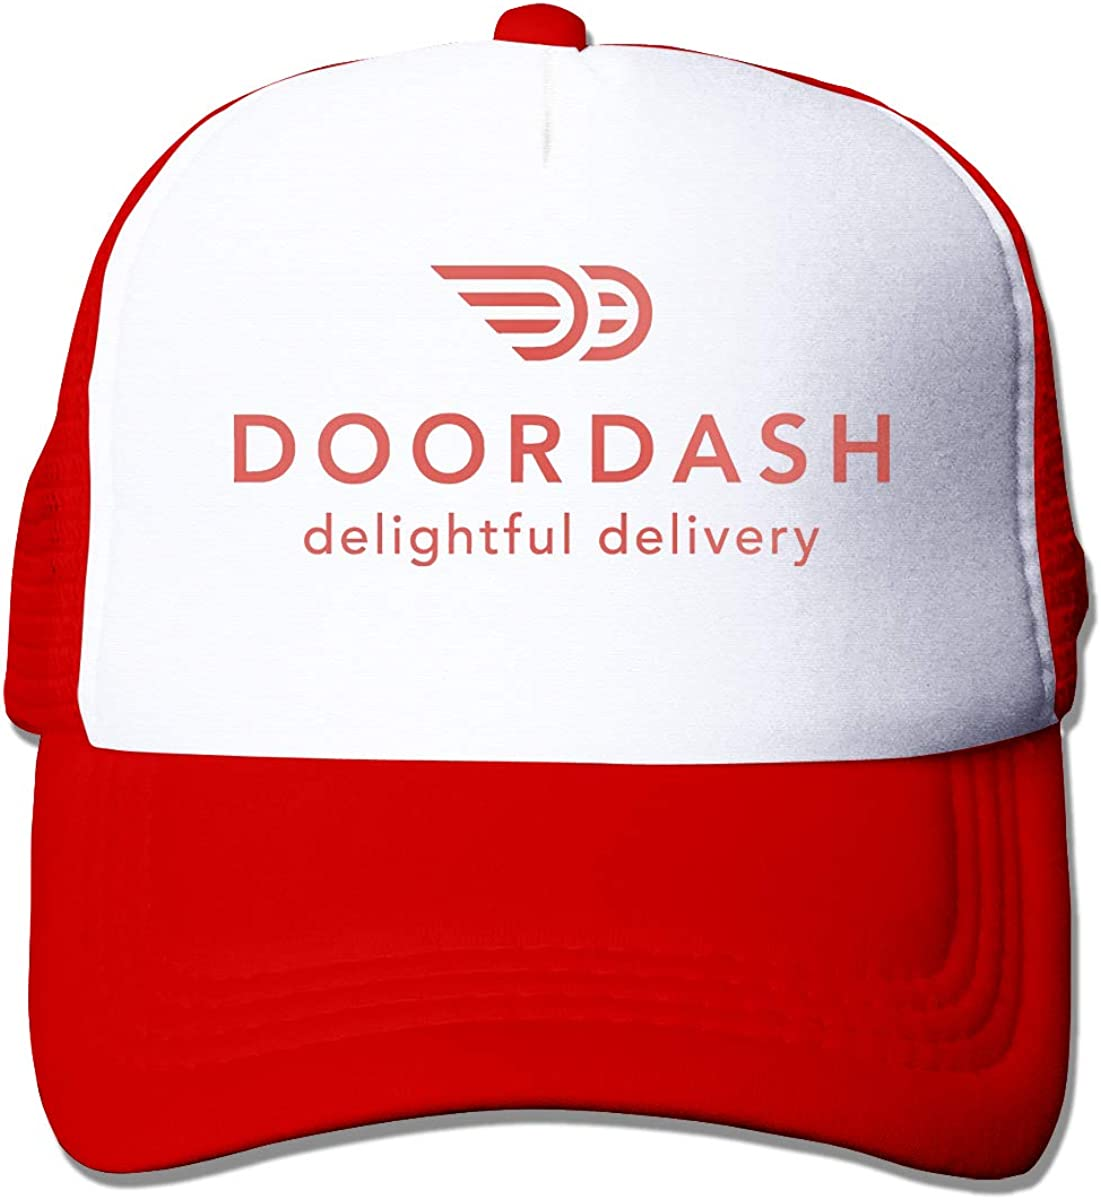 ASFSDGSDG Doordash Door Dash Food Delivery Funny Unisex Adjustable Mesh Hat Baseball Caps Trucker Cap Unisex